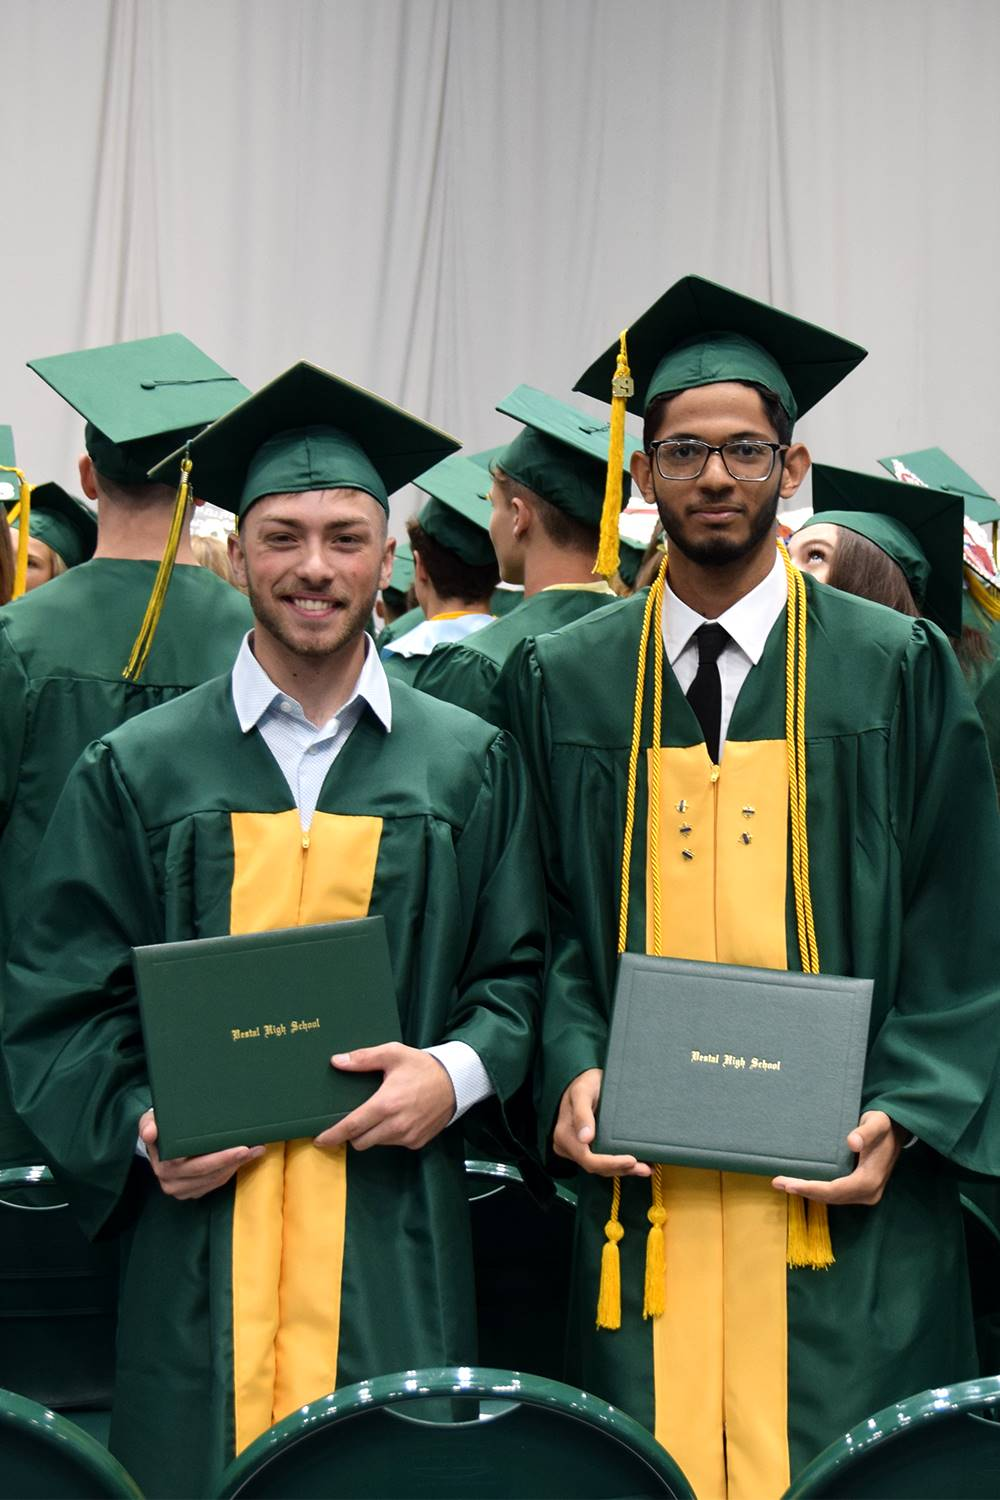 Two Vestal High School graduates hold their green diplomas before they take their seats again.